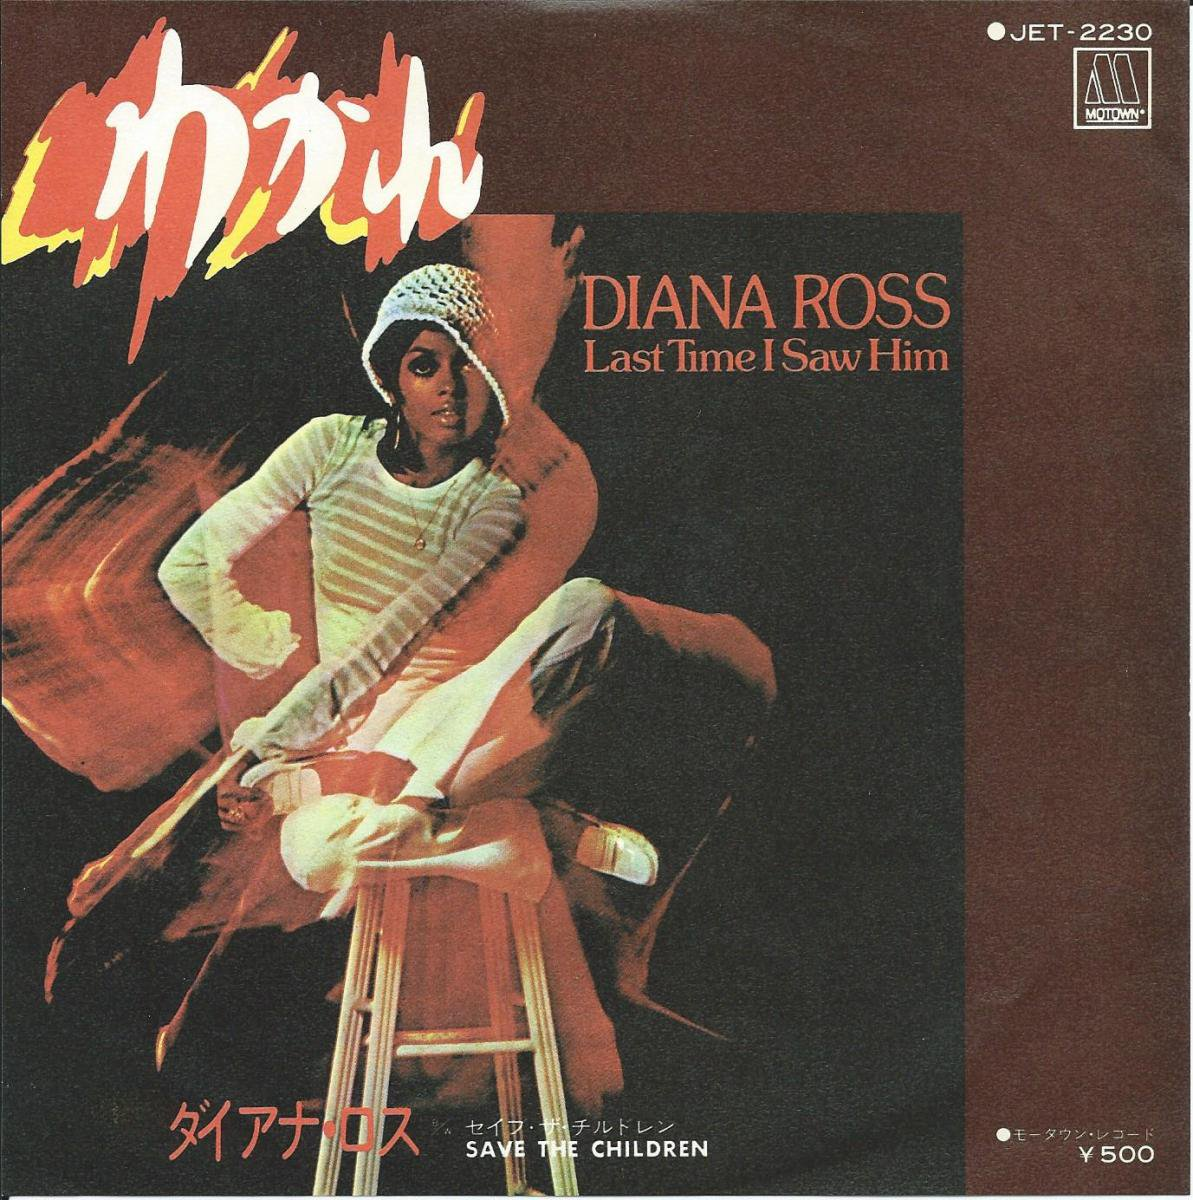 ダイアナ・ロス DIANA ROSS / わかれ LAST TIME I SAW HIM (7